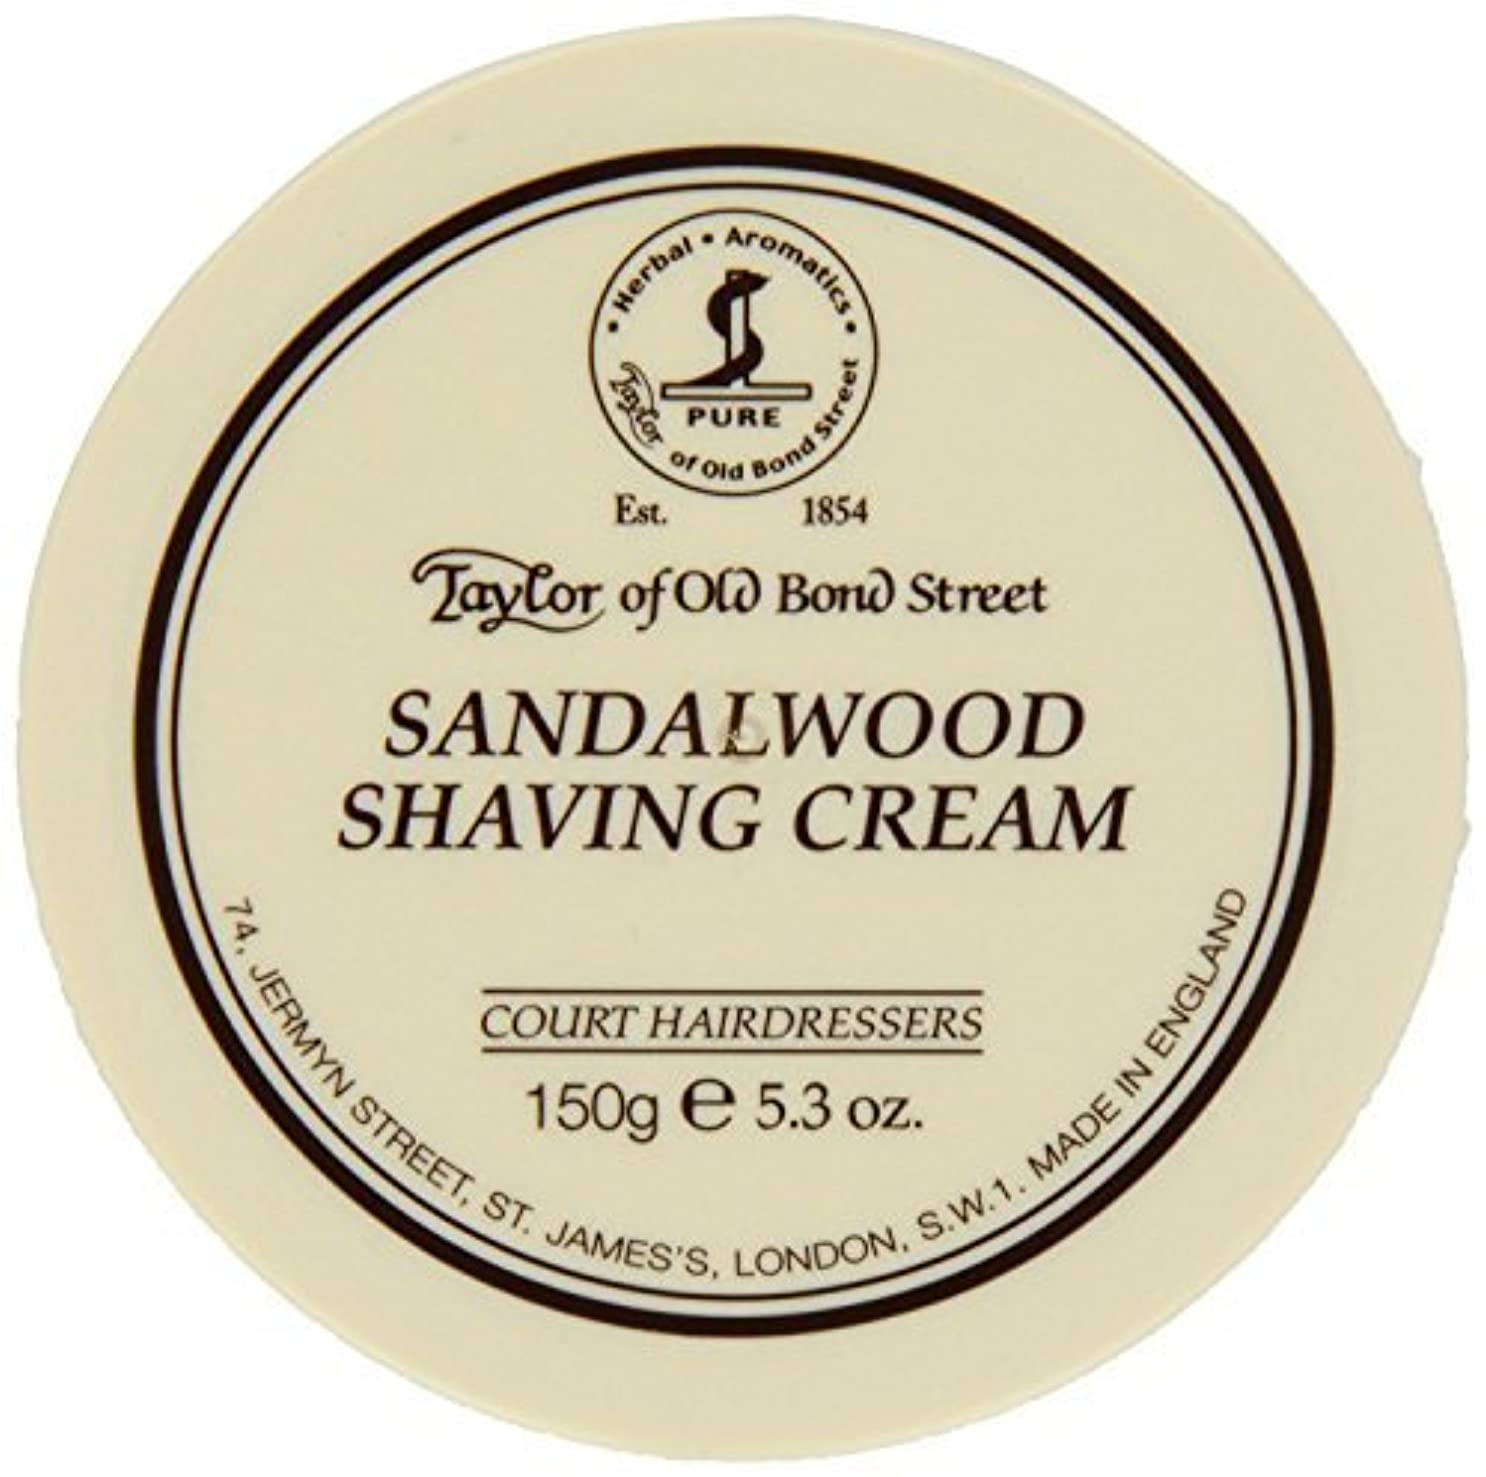 瞑想推進、動かす外交官Taylor of Old Bond Street SHAVING CREAM for SANDALWOOD 150g x 2 Bowls by Taylor of Old Bond Street [並行輸入品]